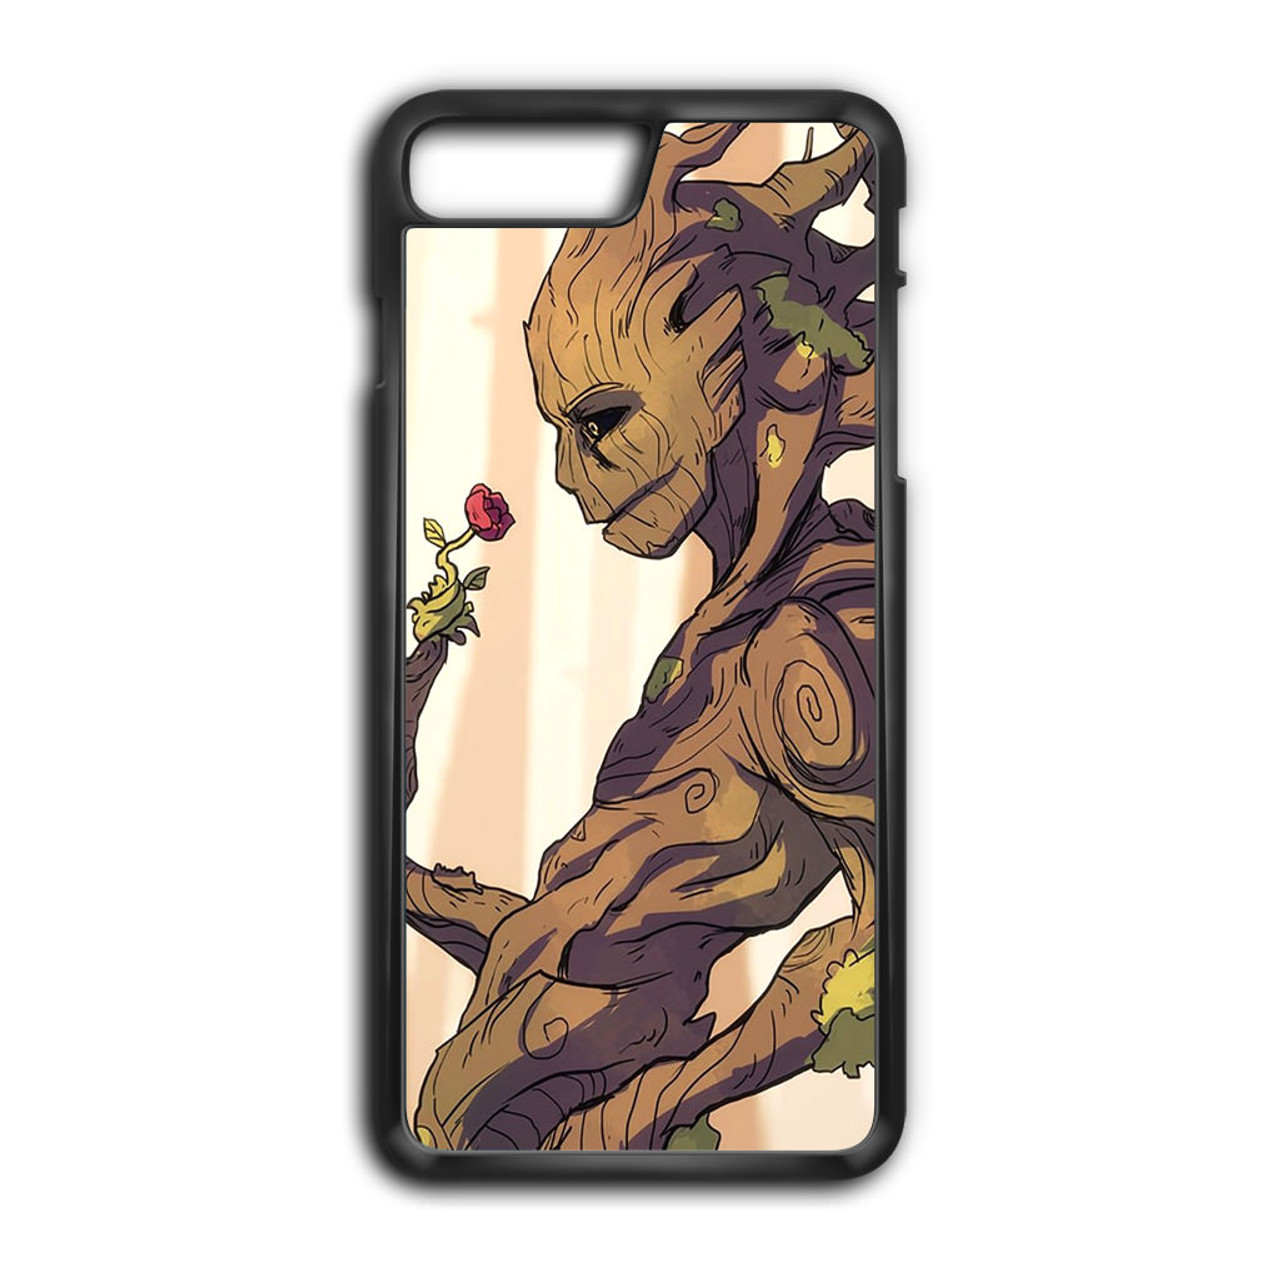 groot iphone 8 plus case